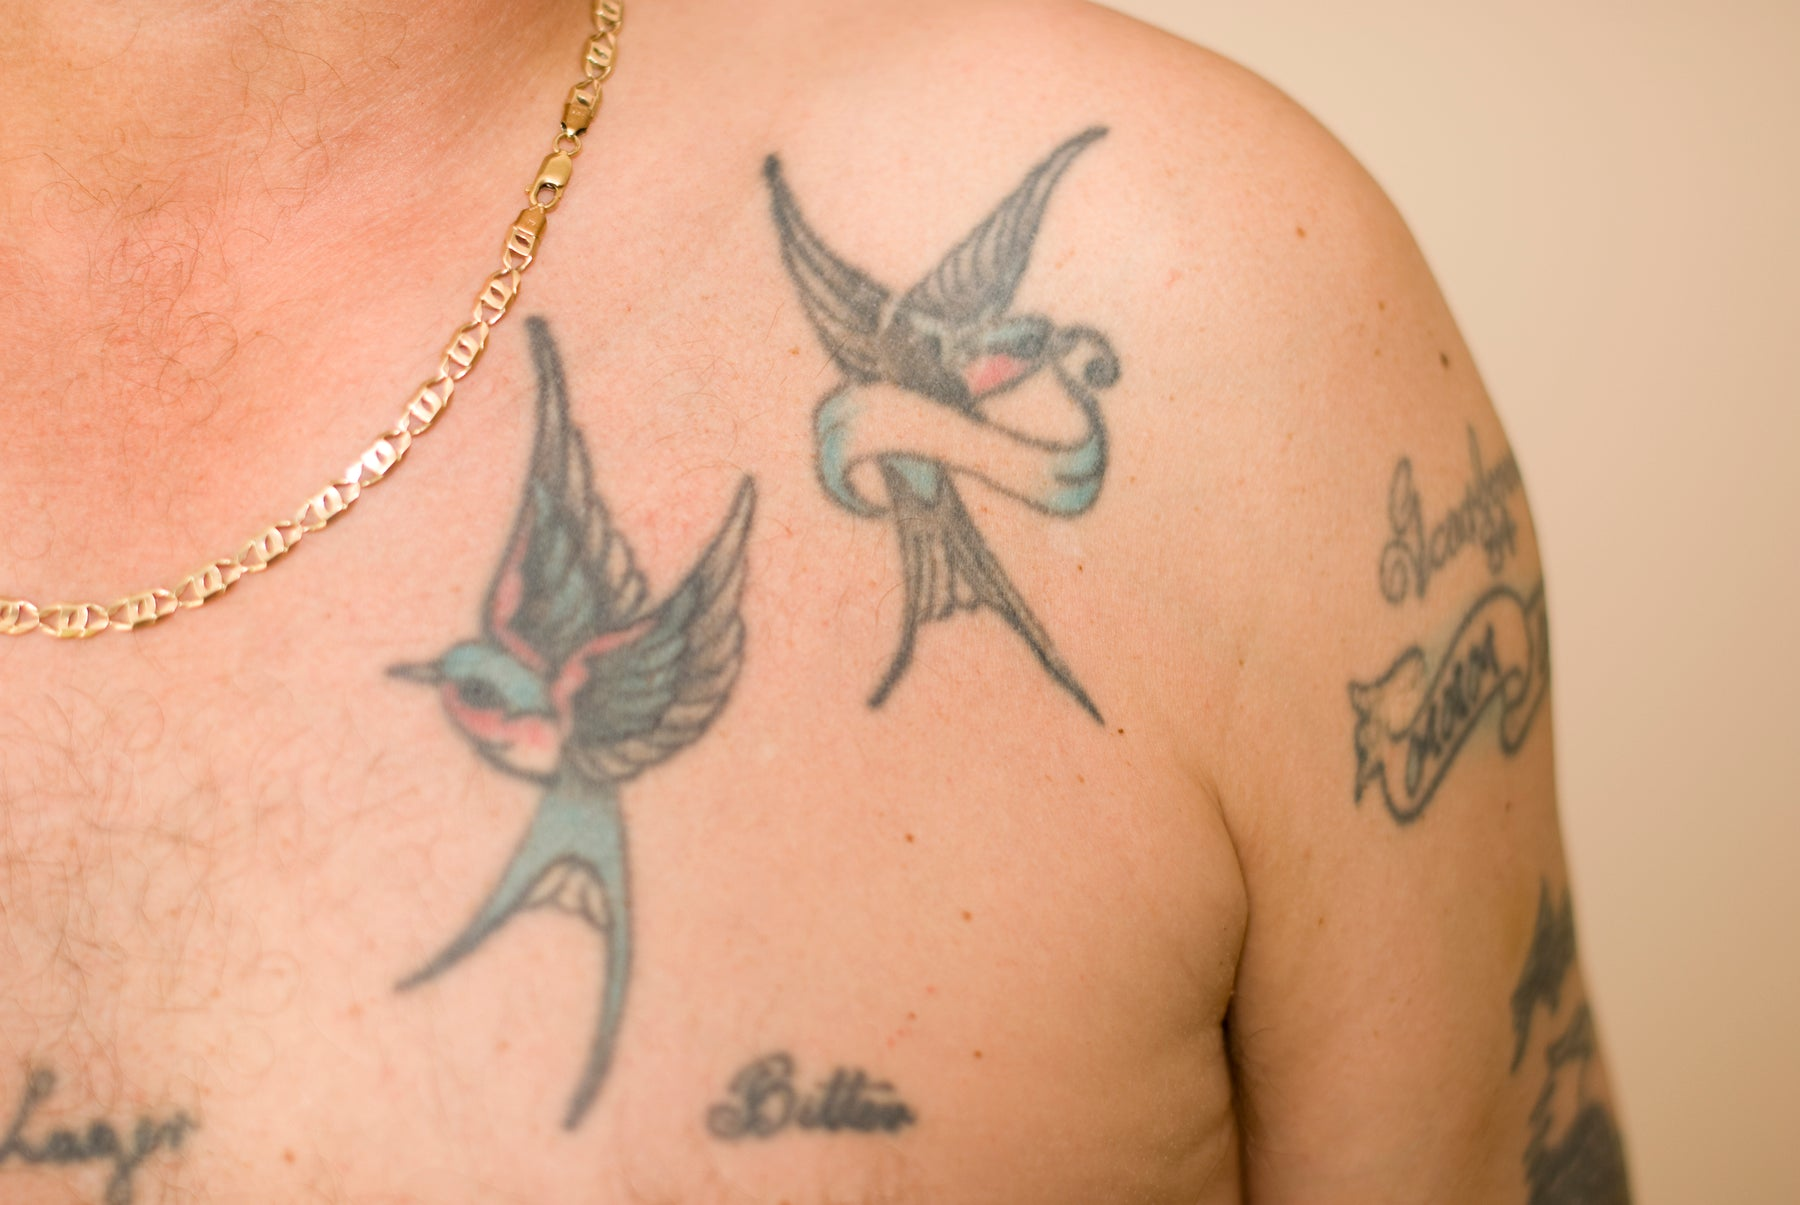 How a sailor's tattoo saved his soul